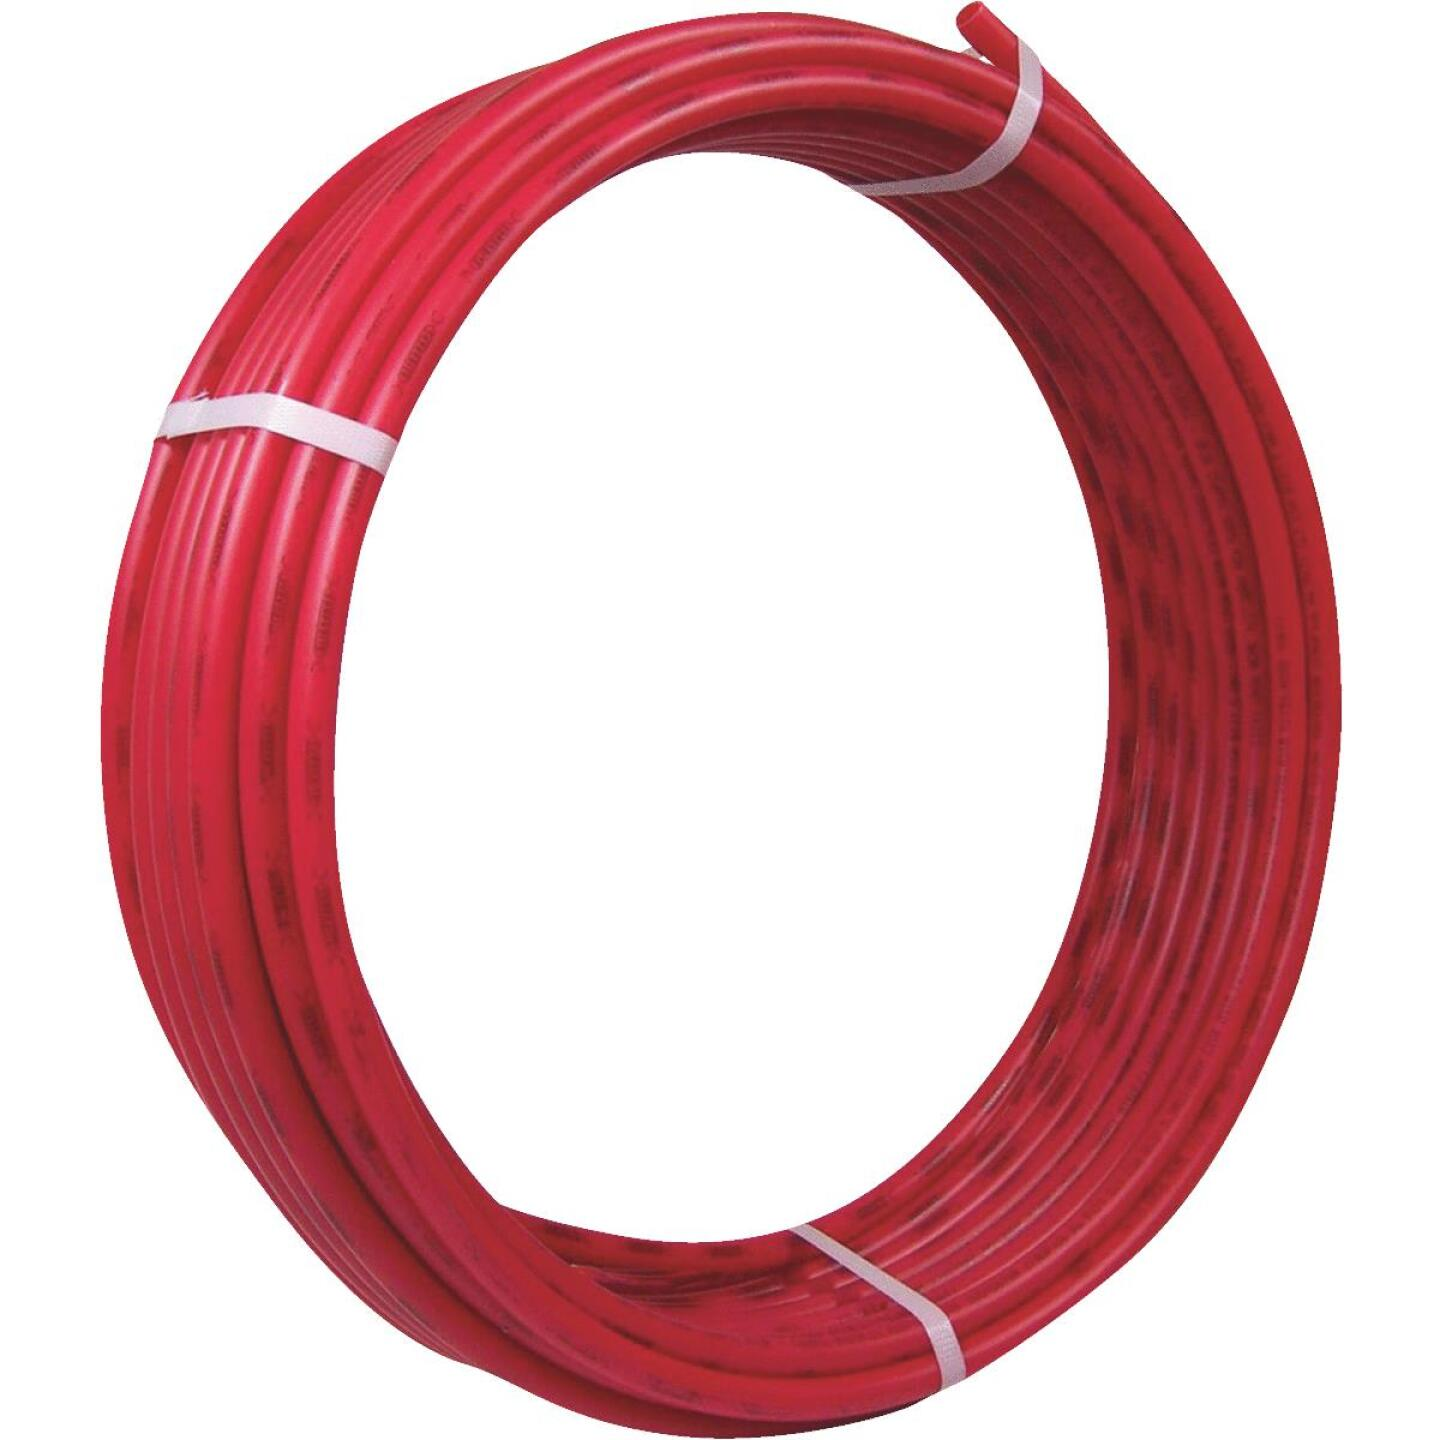 SharkBite 3/4 In. x 100 Ft. Red PEX Pipe Type B Coil Image 1